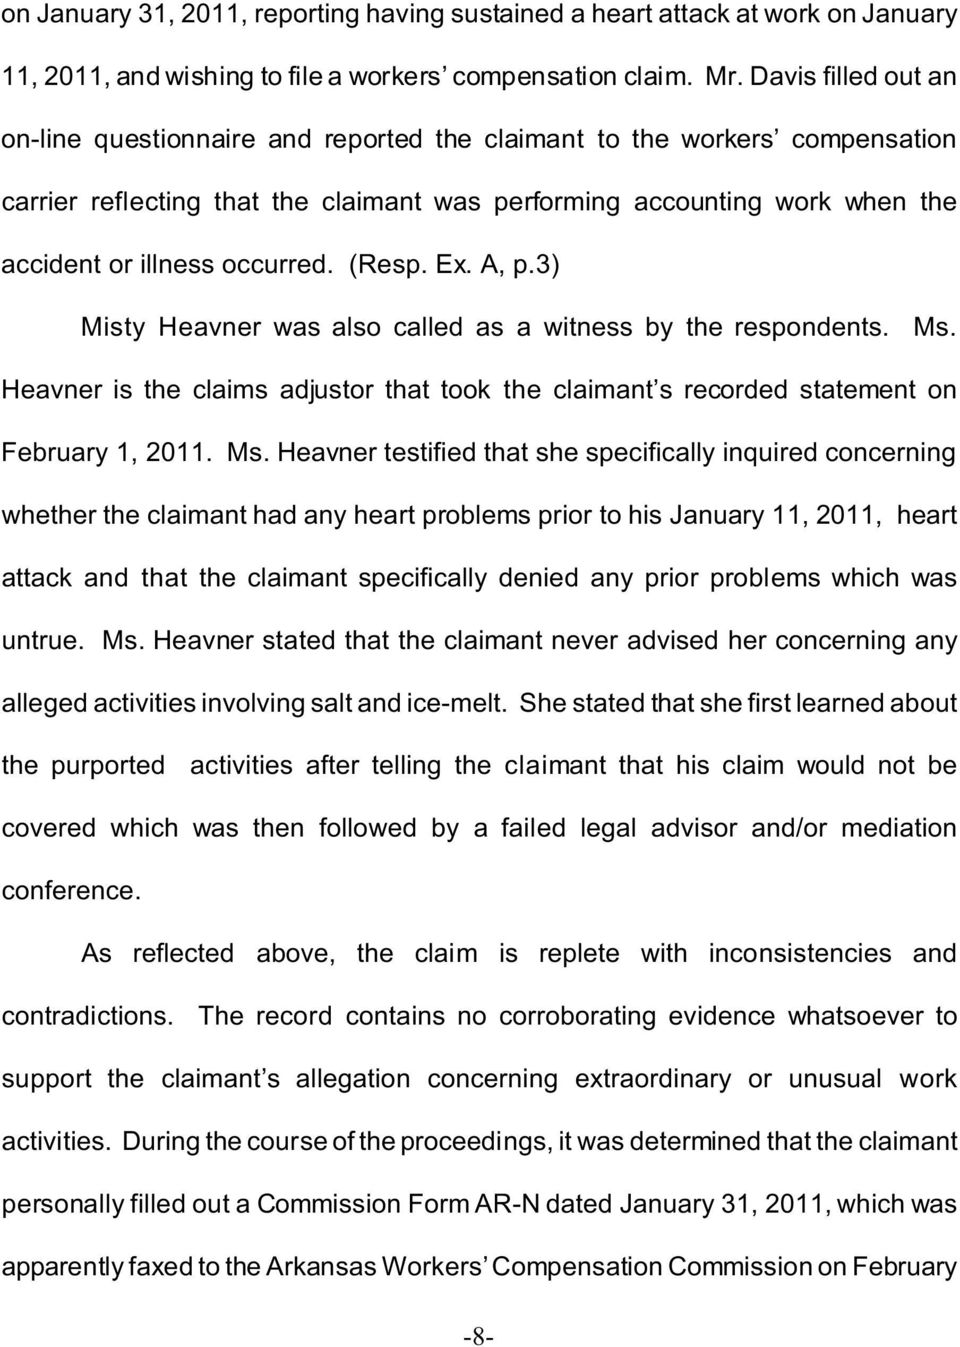 occurred. (Resp. Ex. A, p.3) Misty Heavner was also called as a witness by the respondents. Ms.